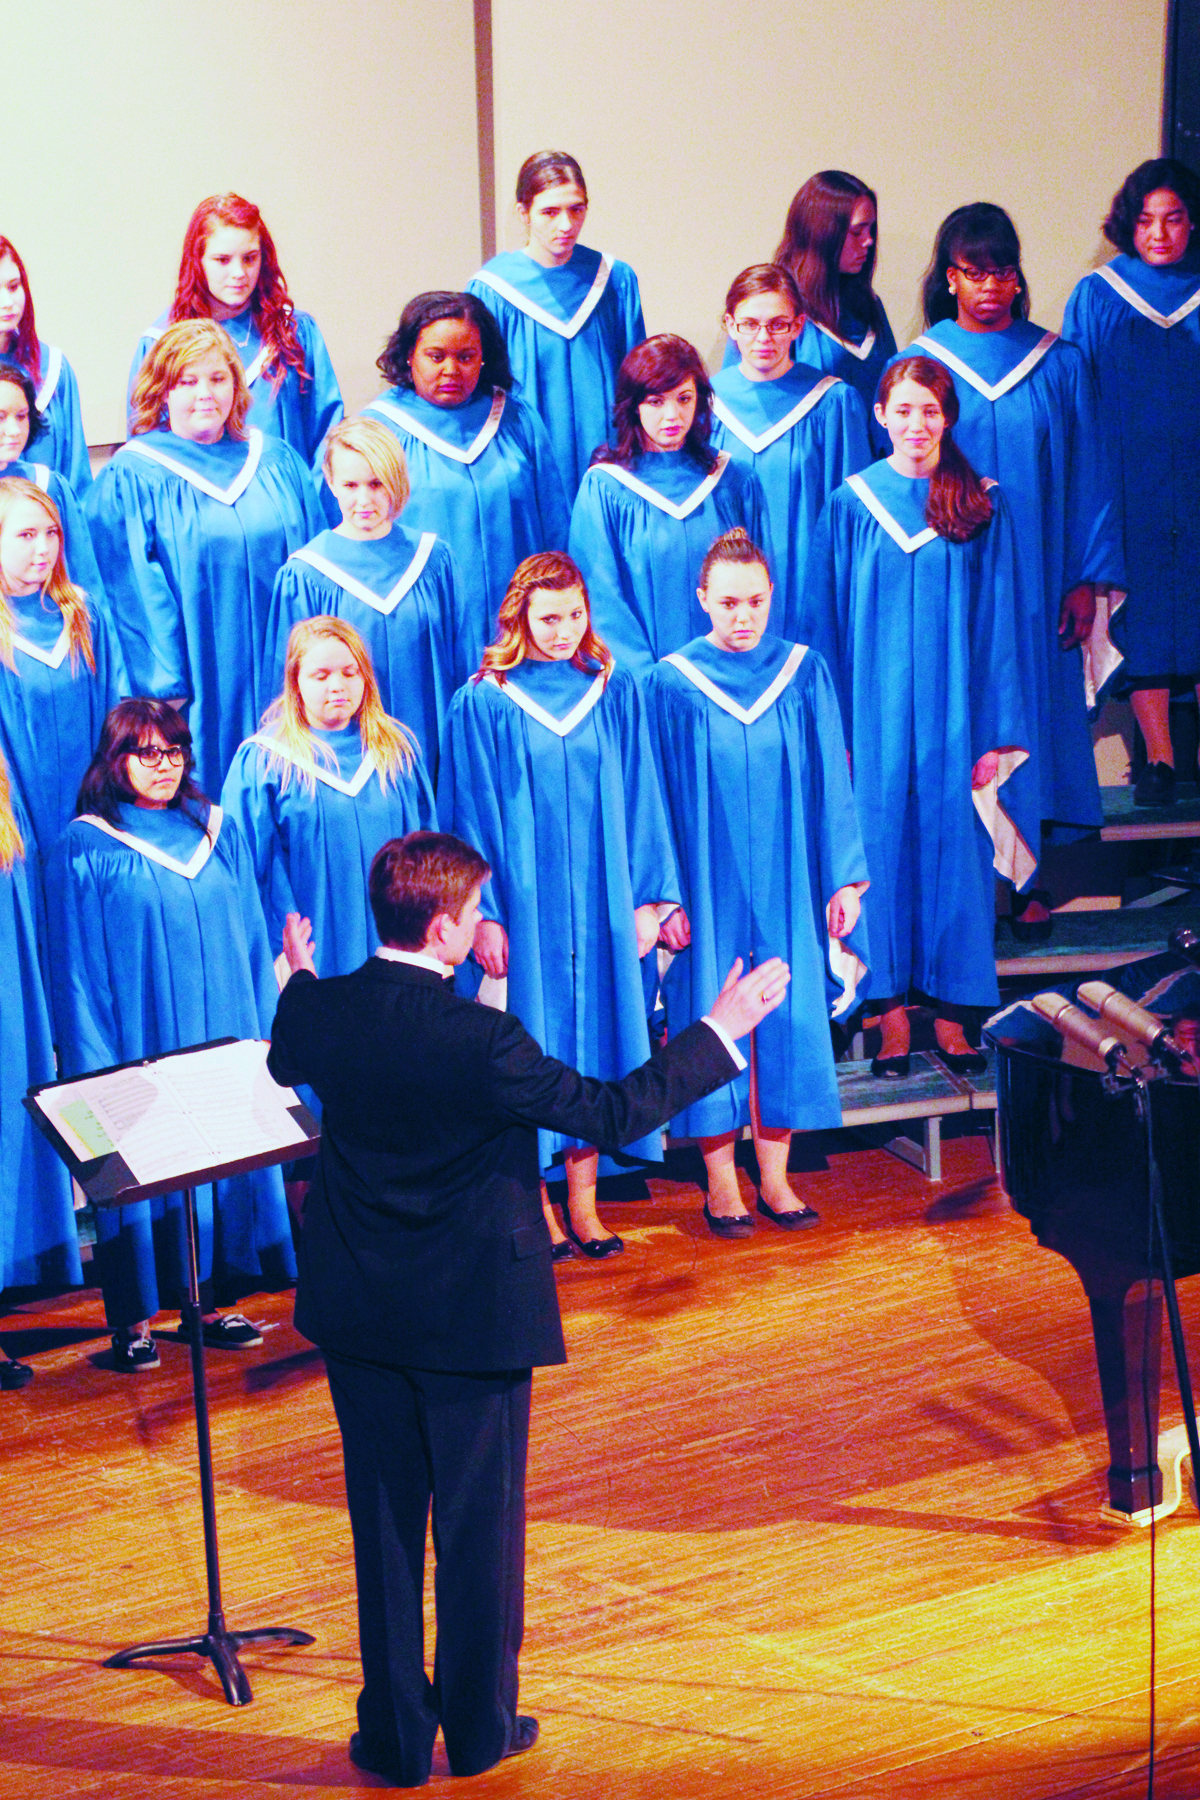 Dressed for the part: CCHS choir begins fundraisers